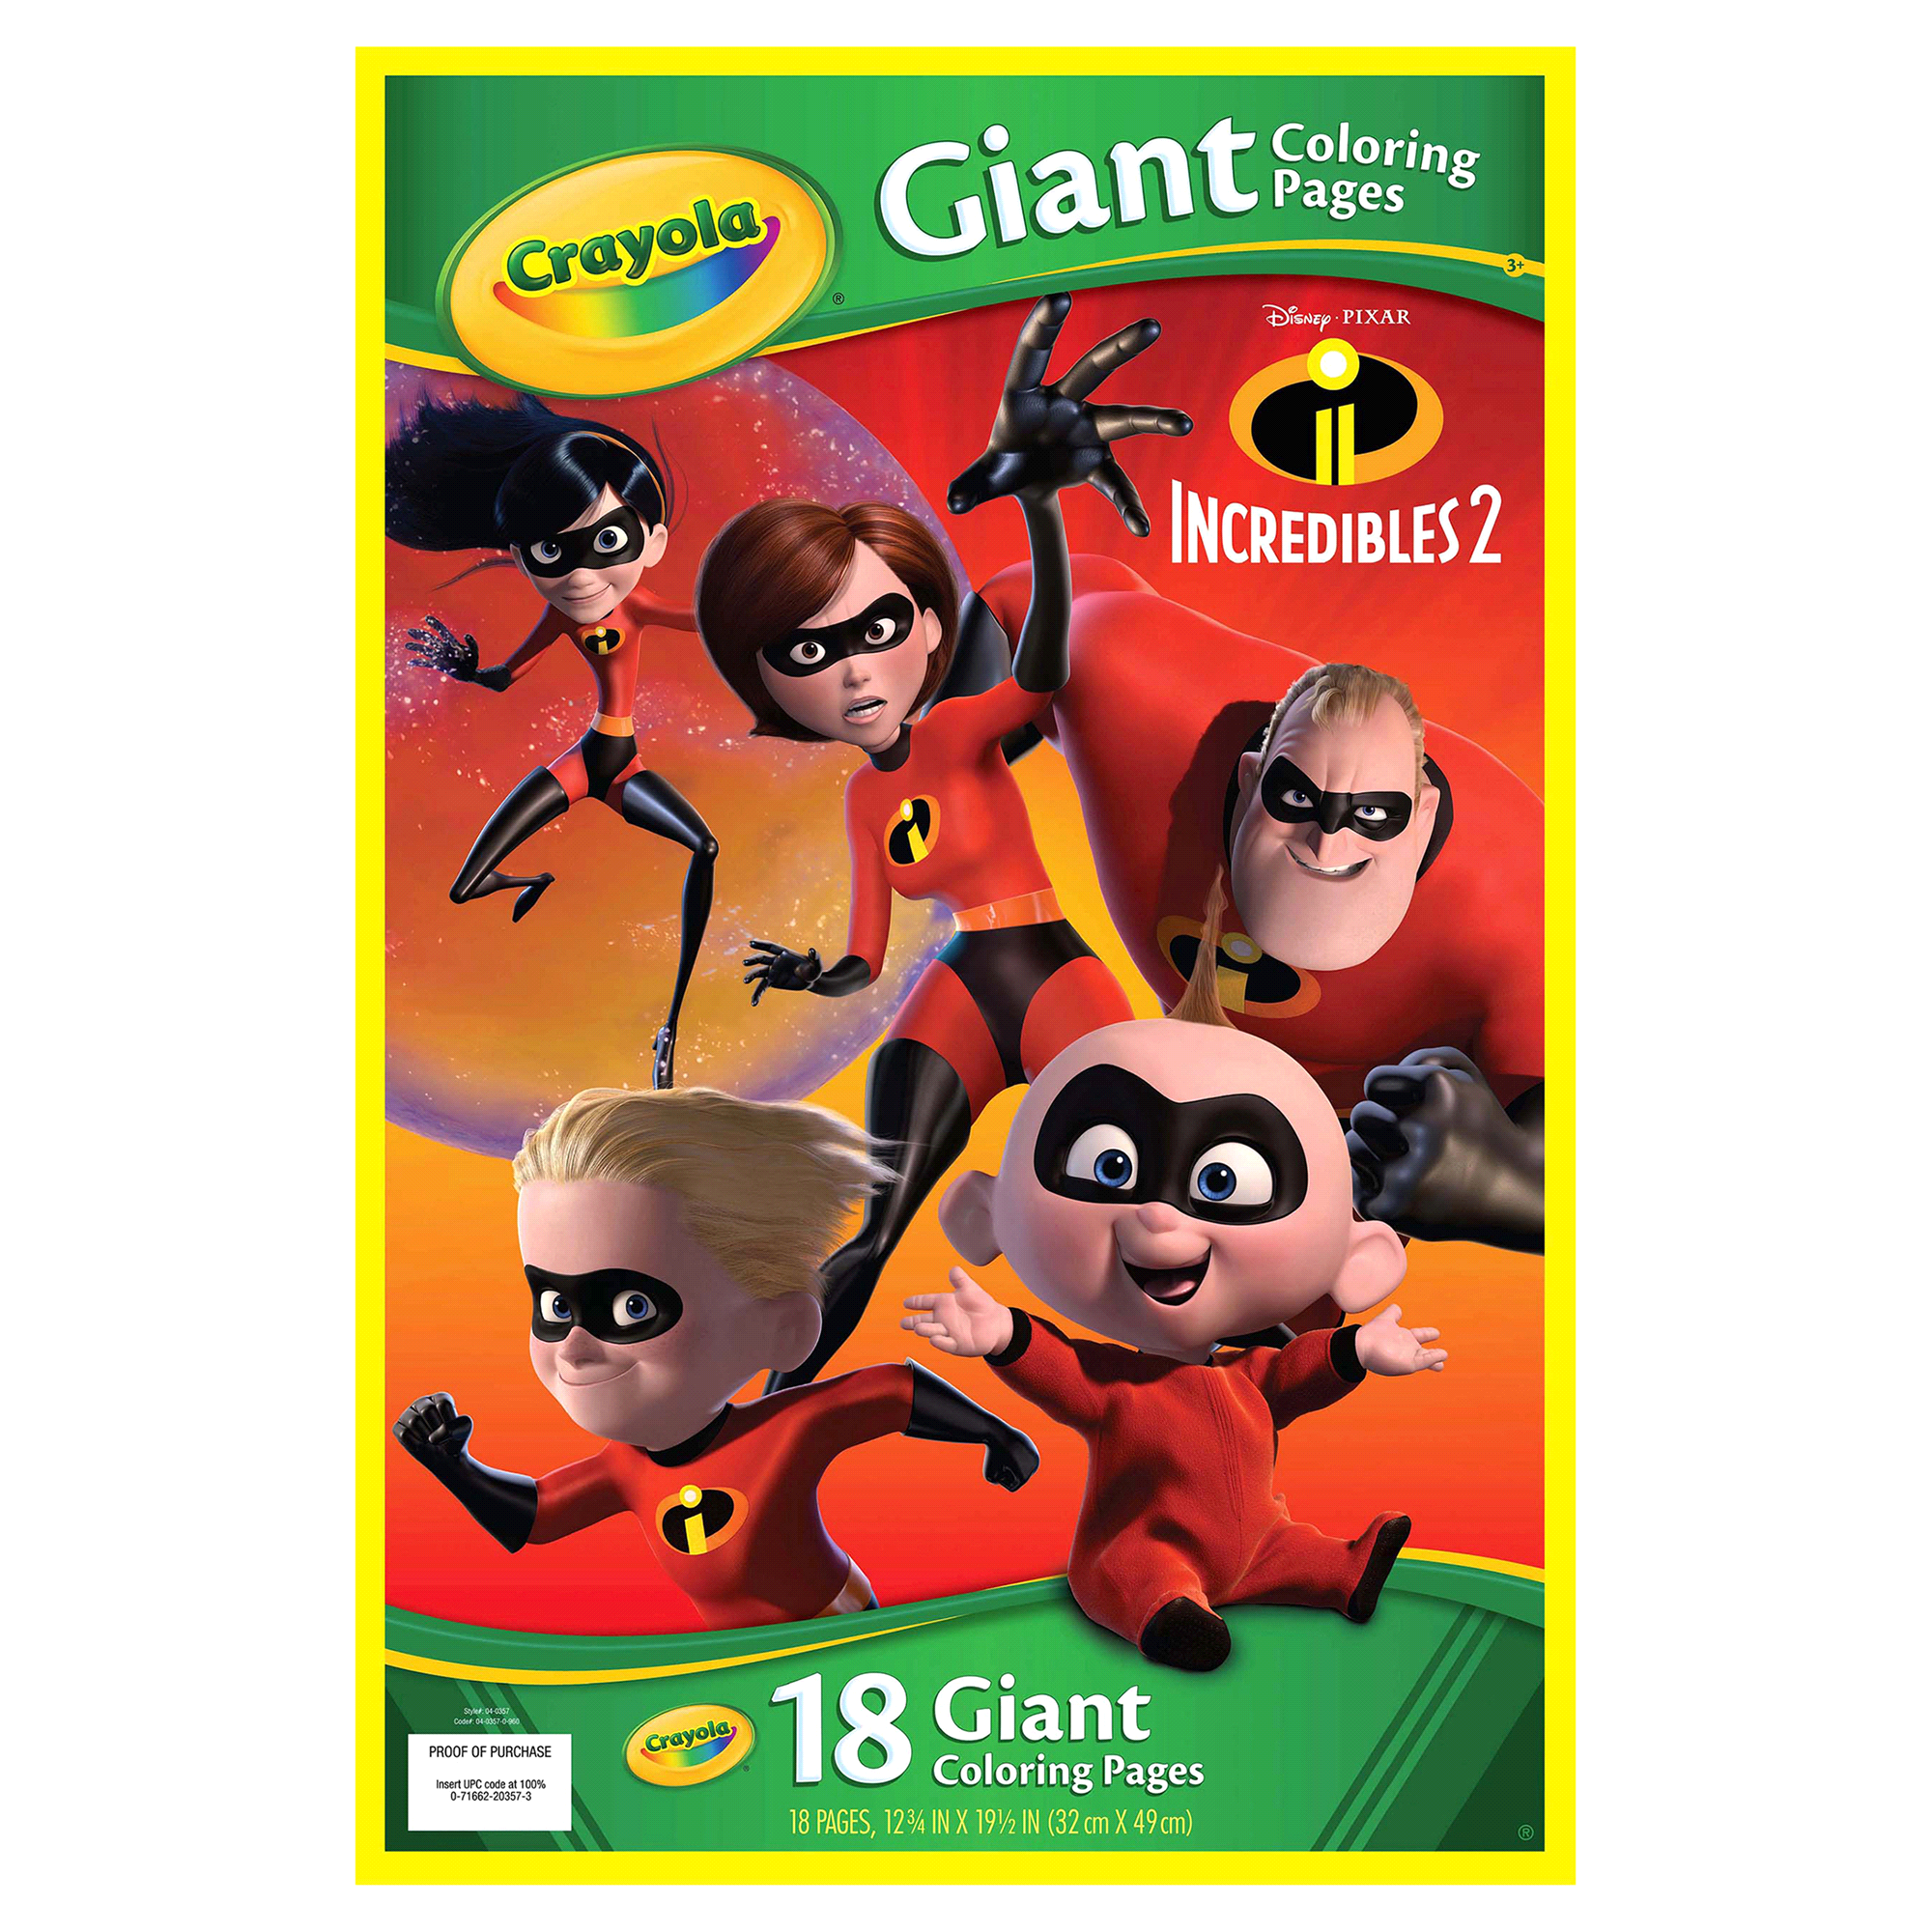 Crayola Incredibles 2 Giant Coloring Pages | Meijer.com